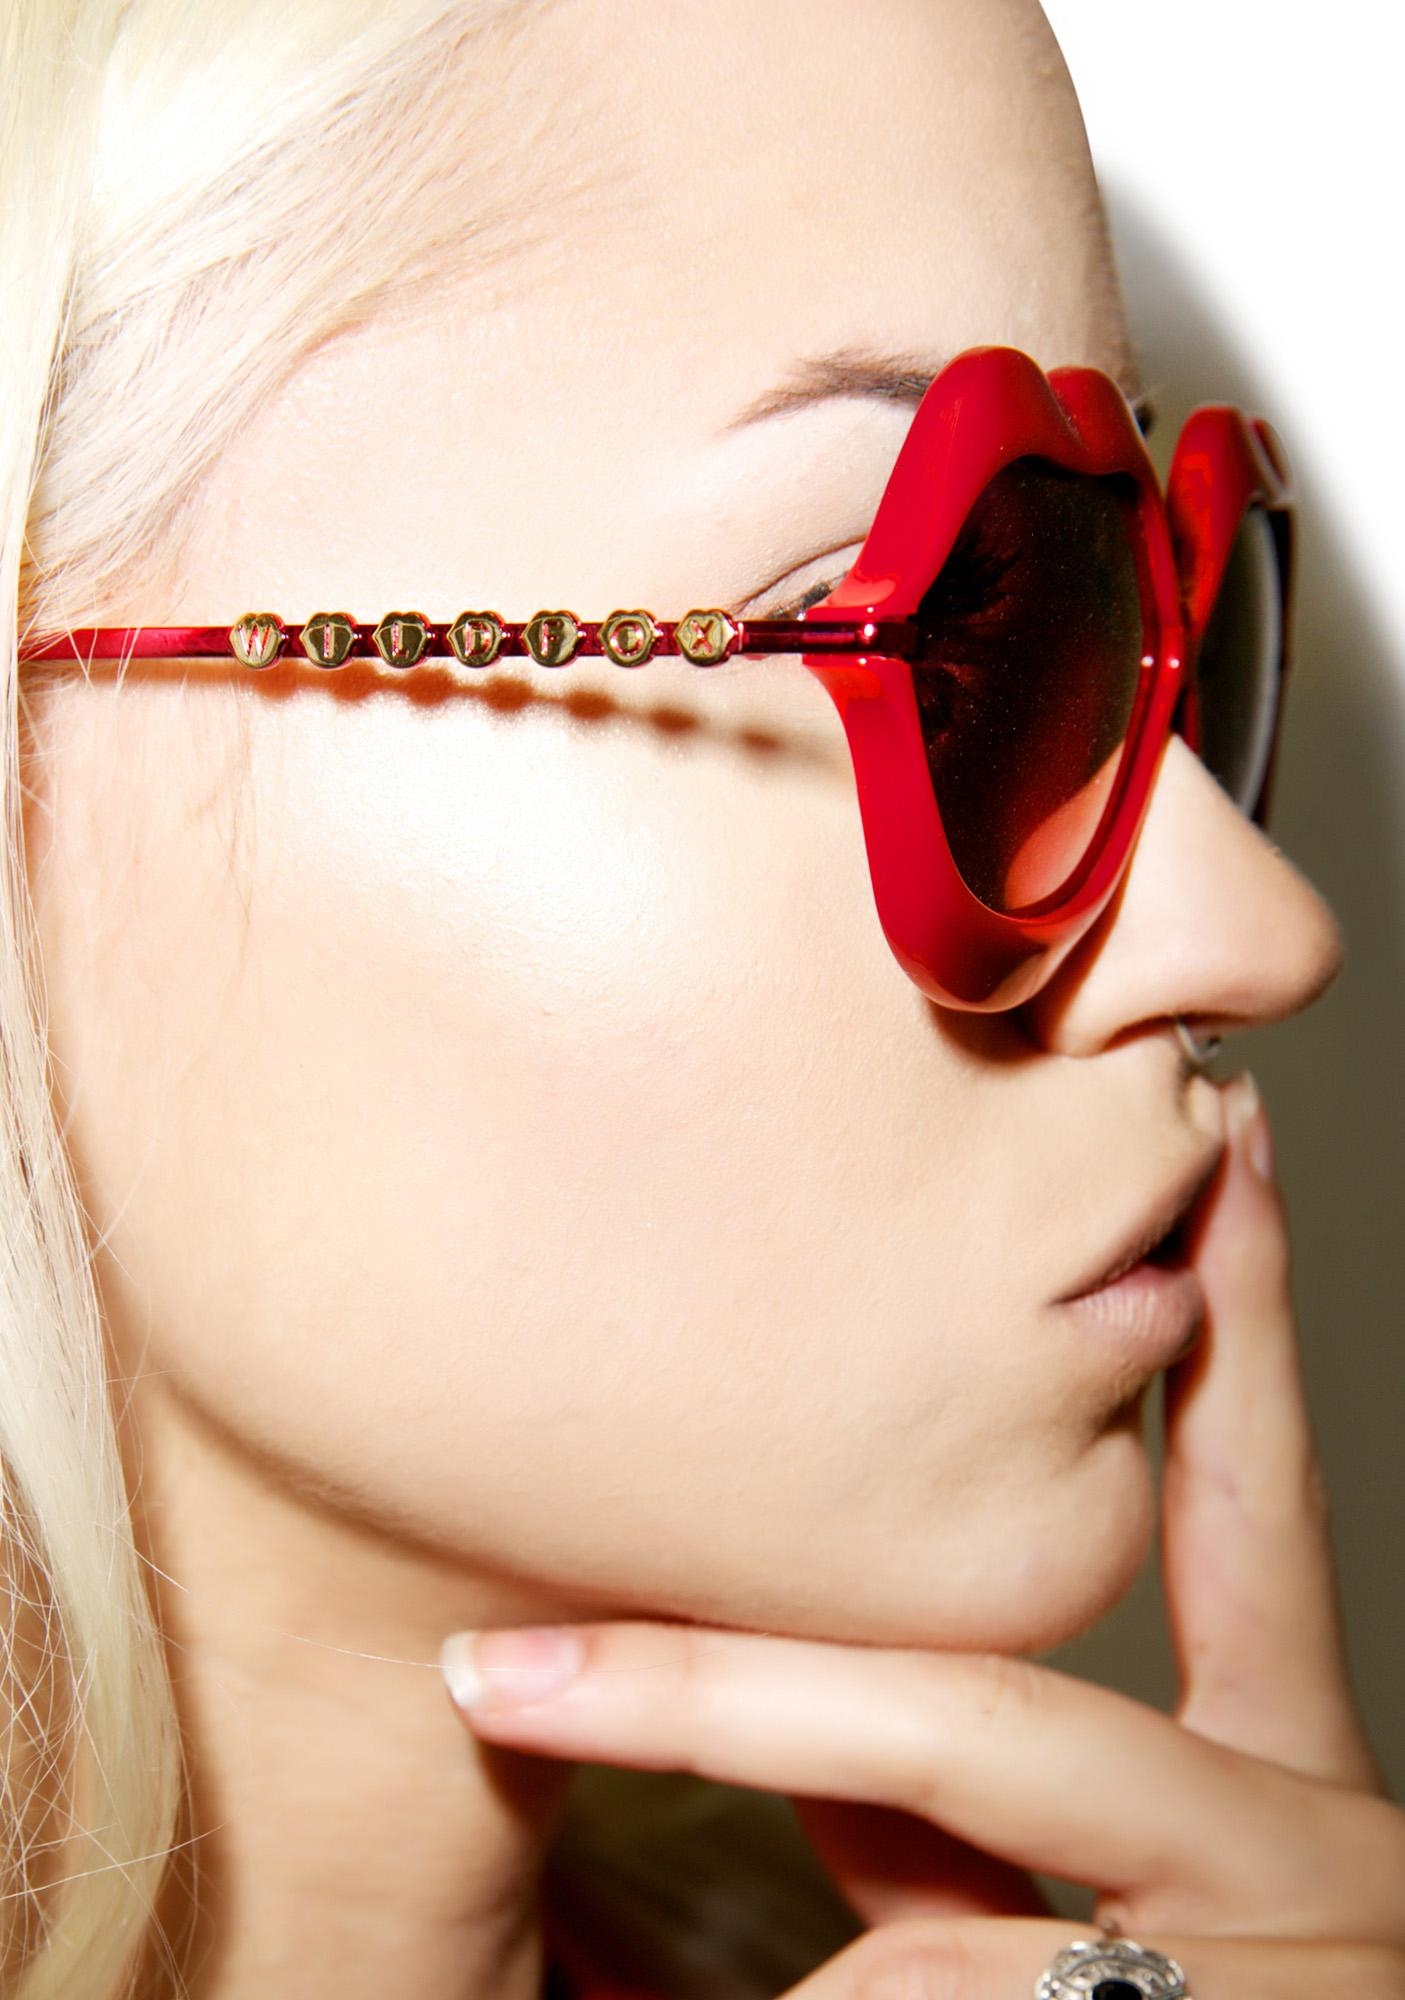 Wildfox Couture Red Lip Service Sunglasses